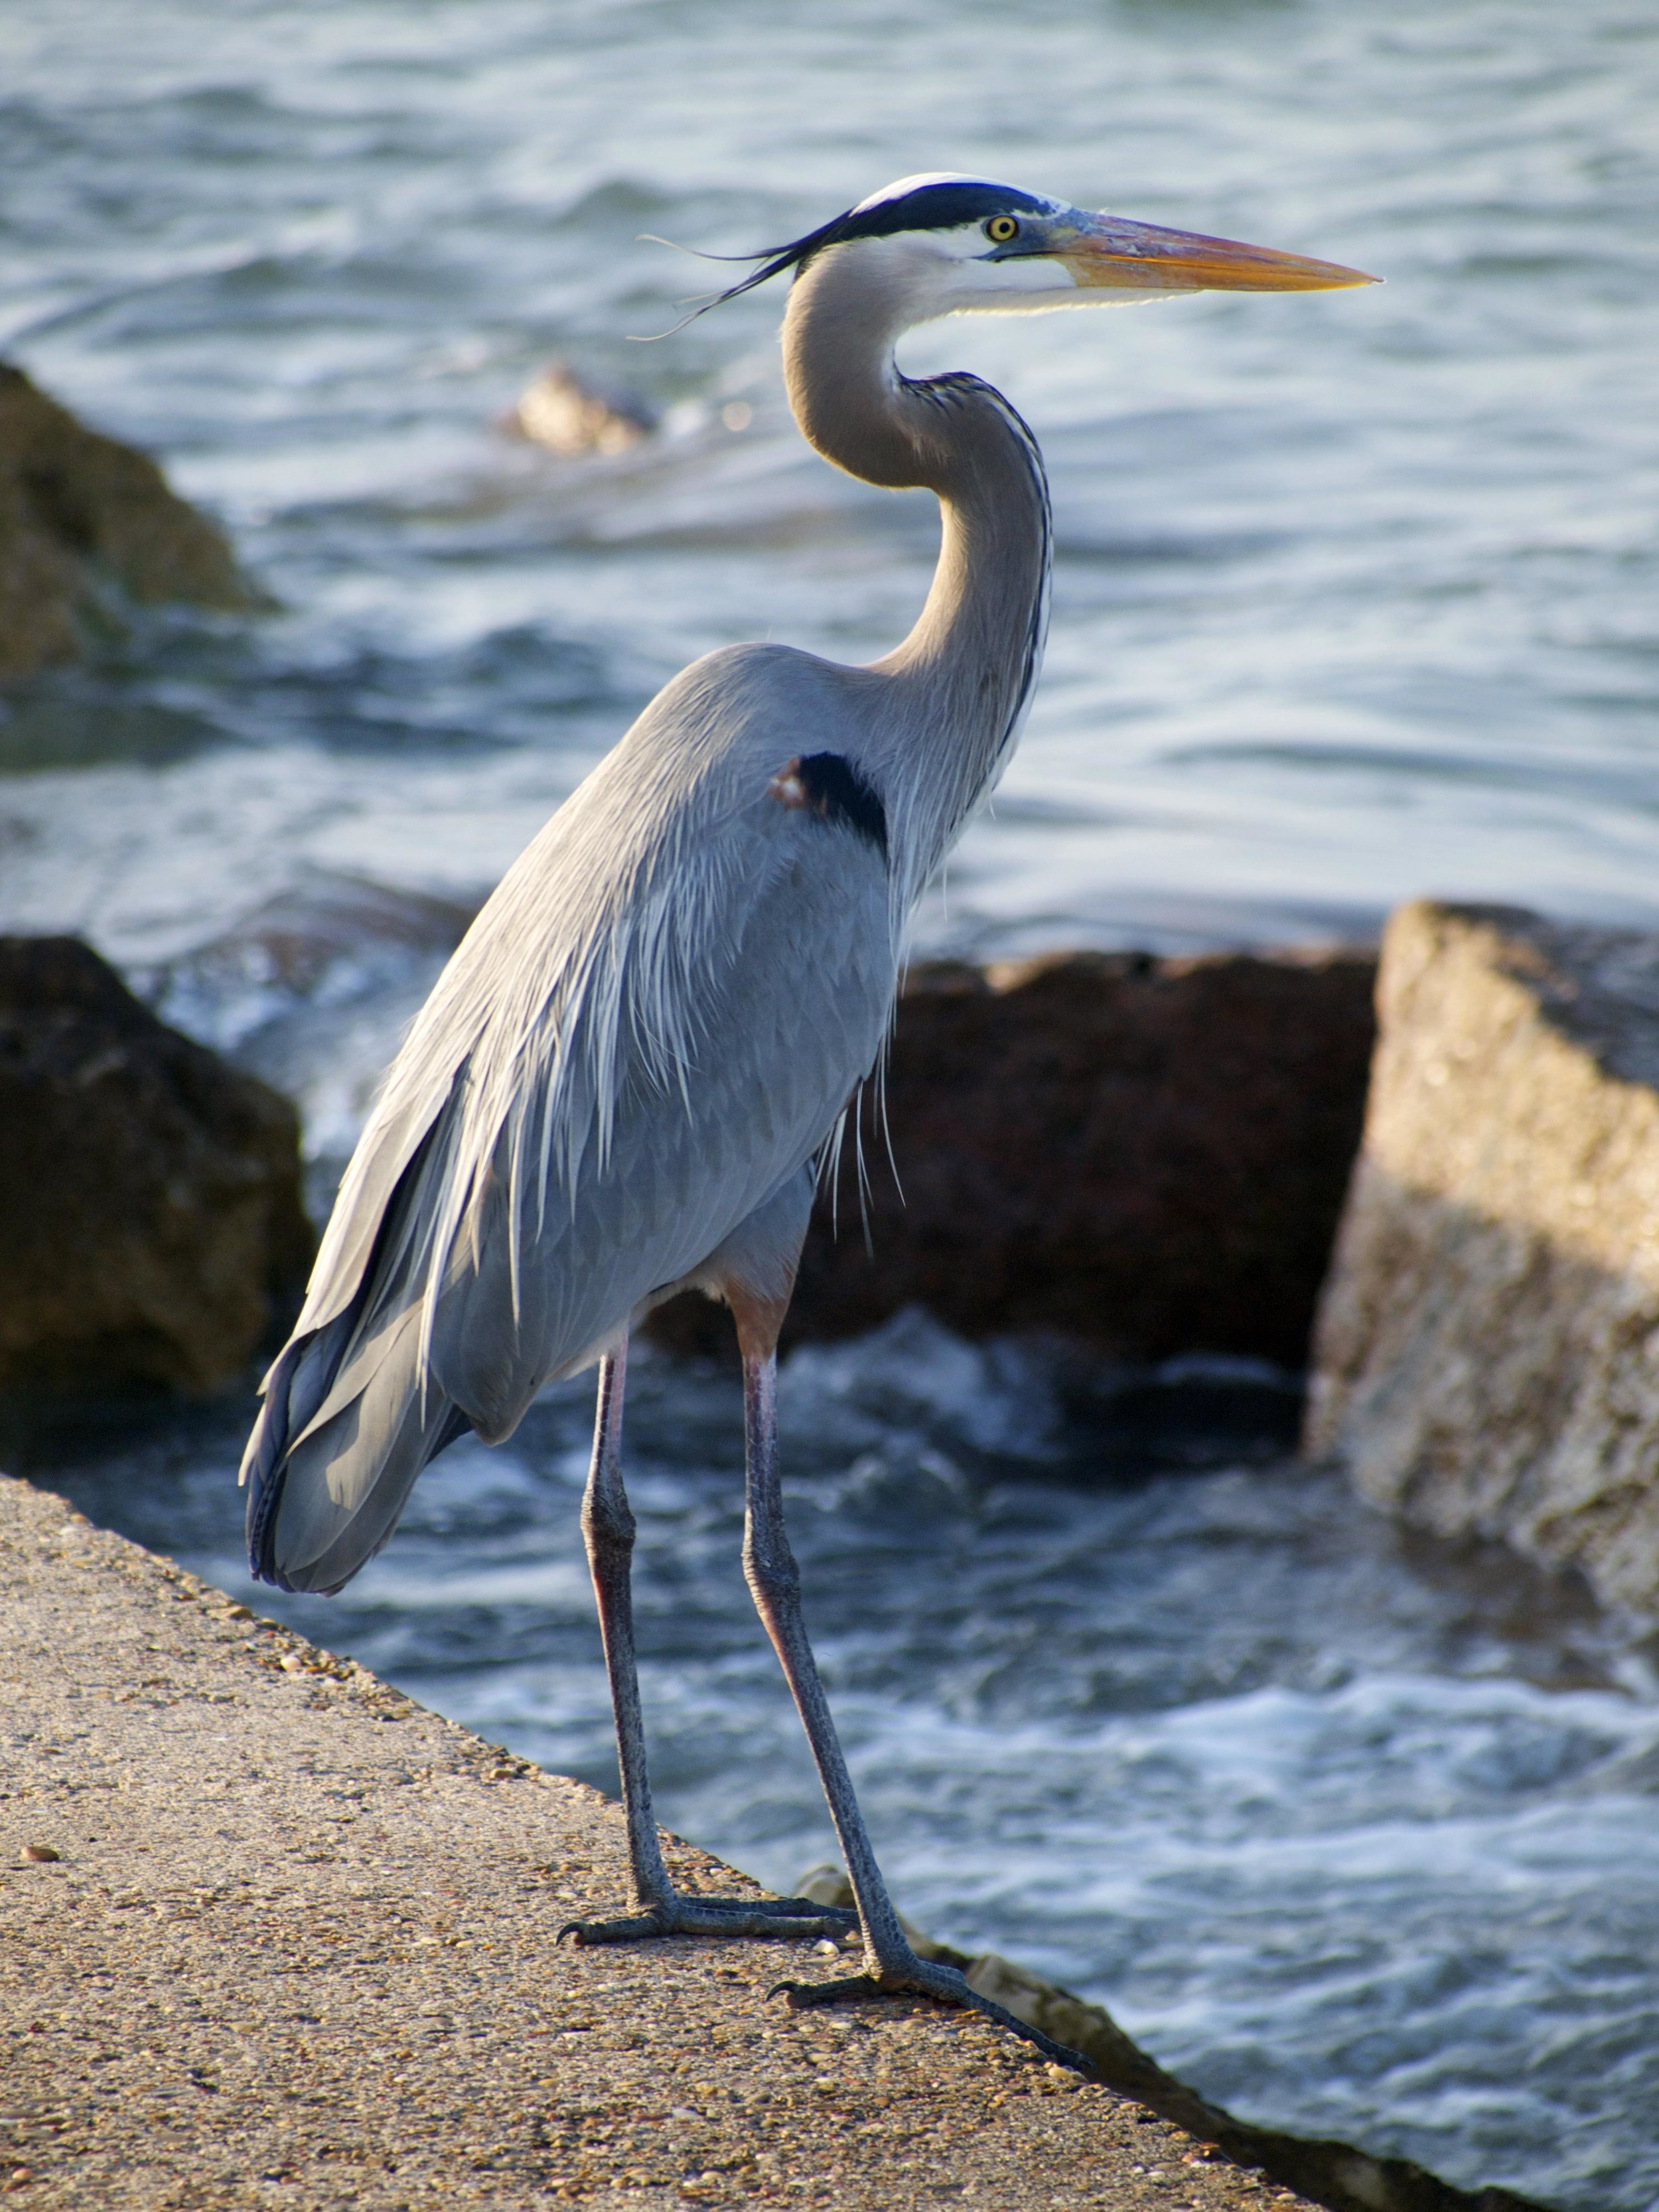 Great Blue Heron - Photo by Tim Giller